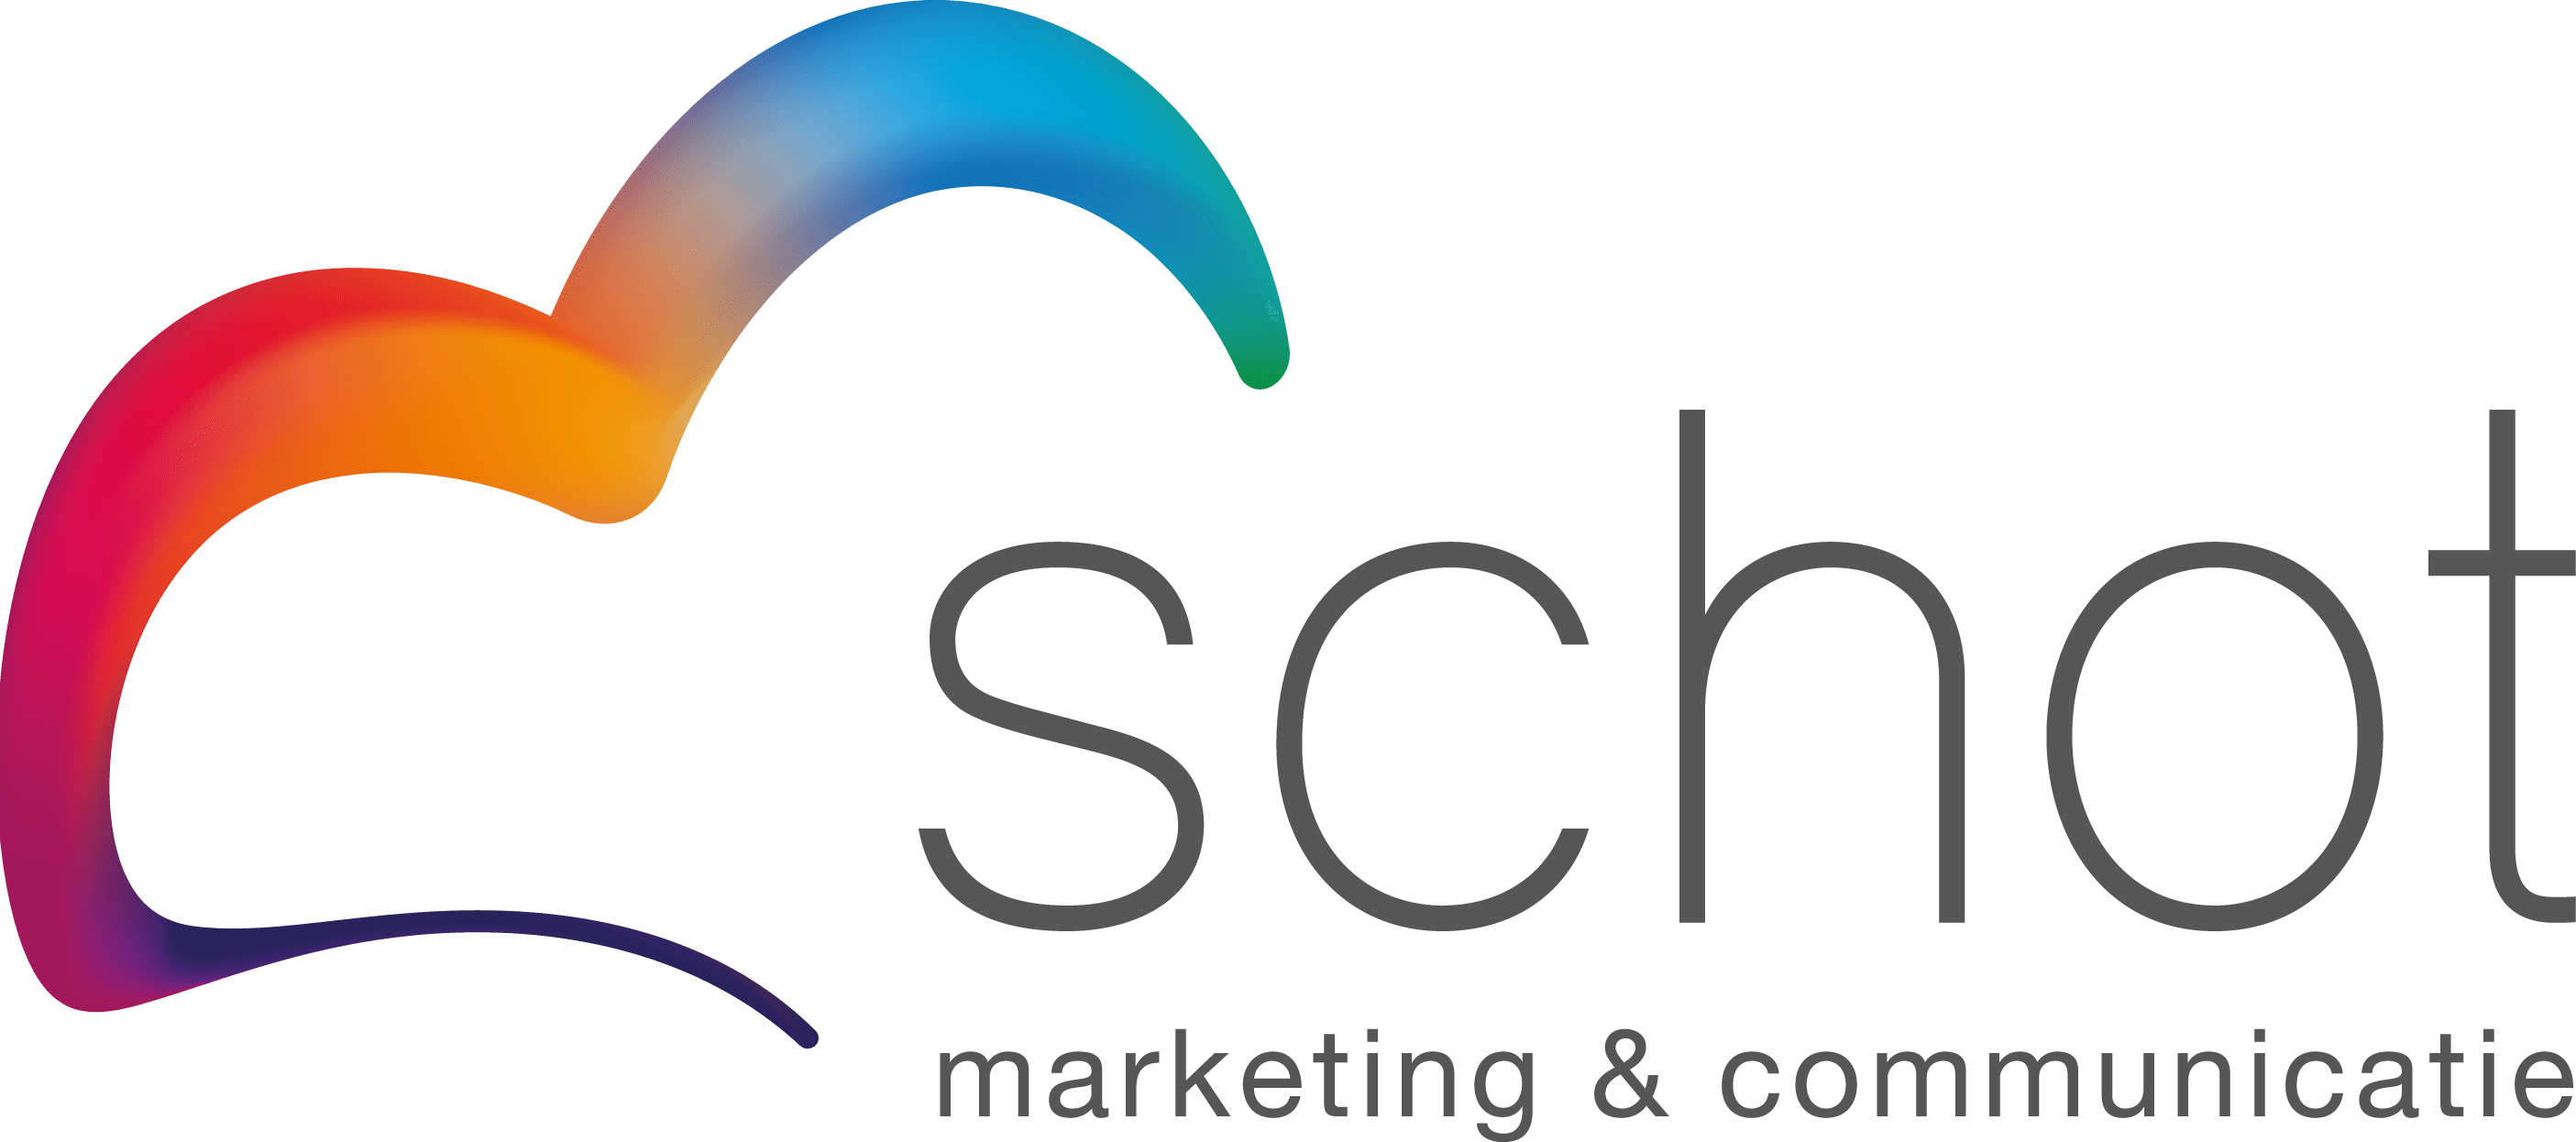 Schot Marketing